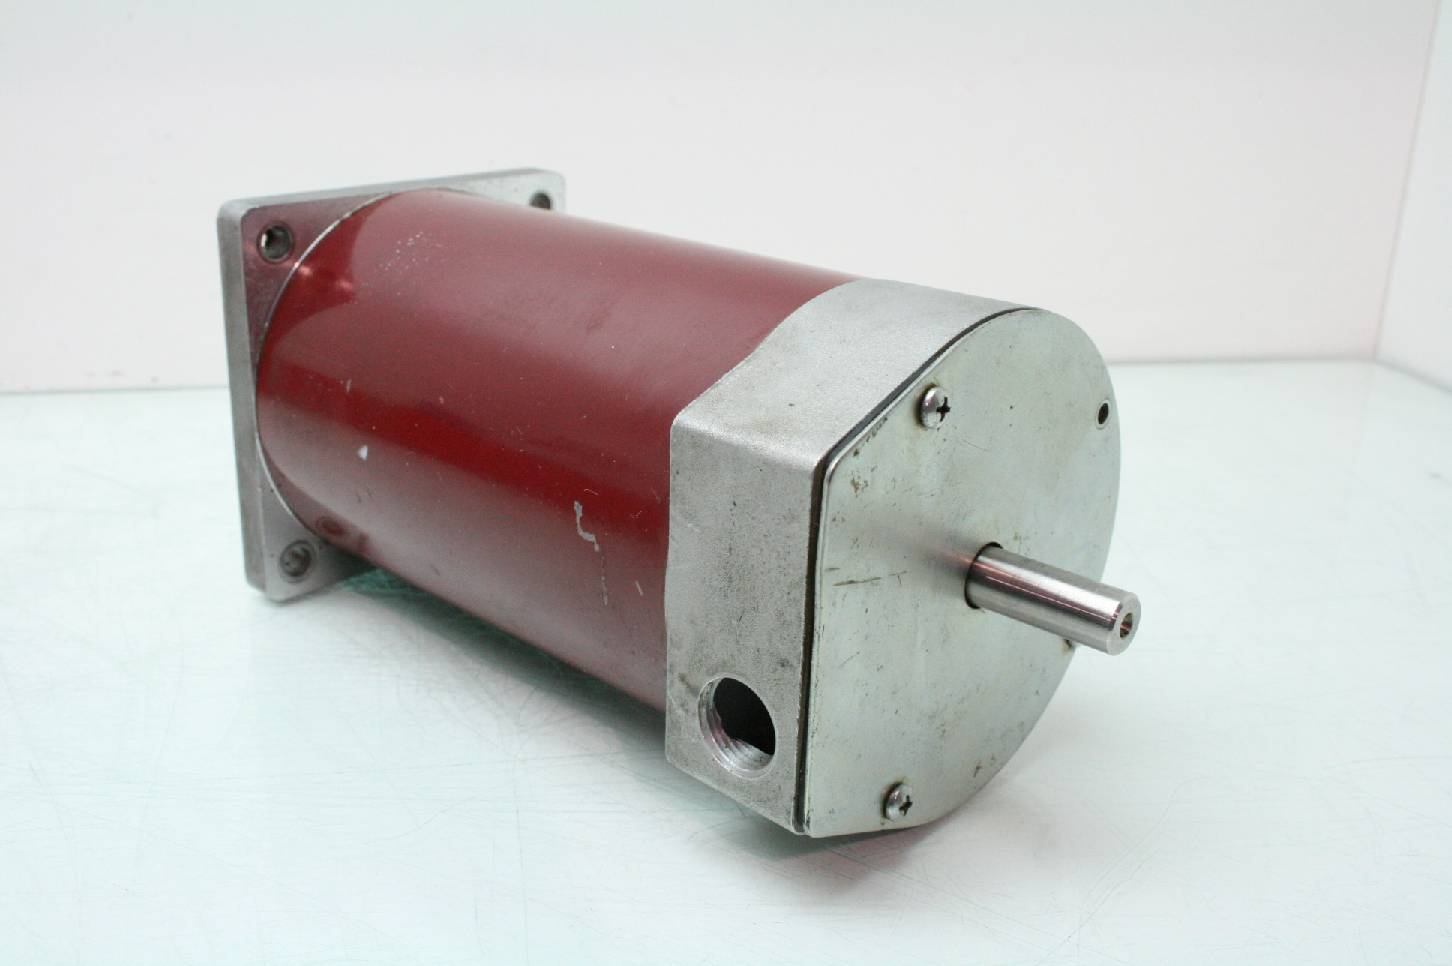 Pacific scientific e42hfla lsk ns 03 stepper motor 237w for Nema design b motor